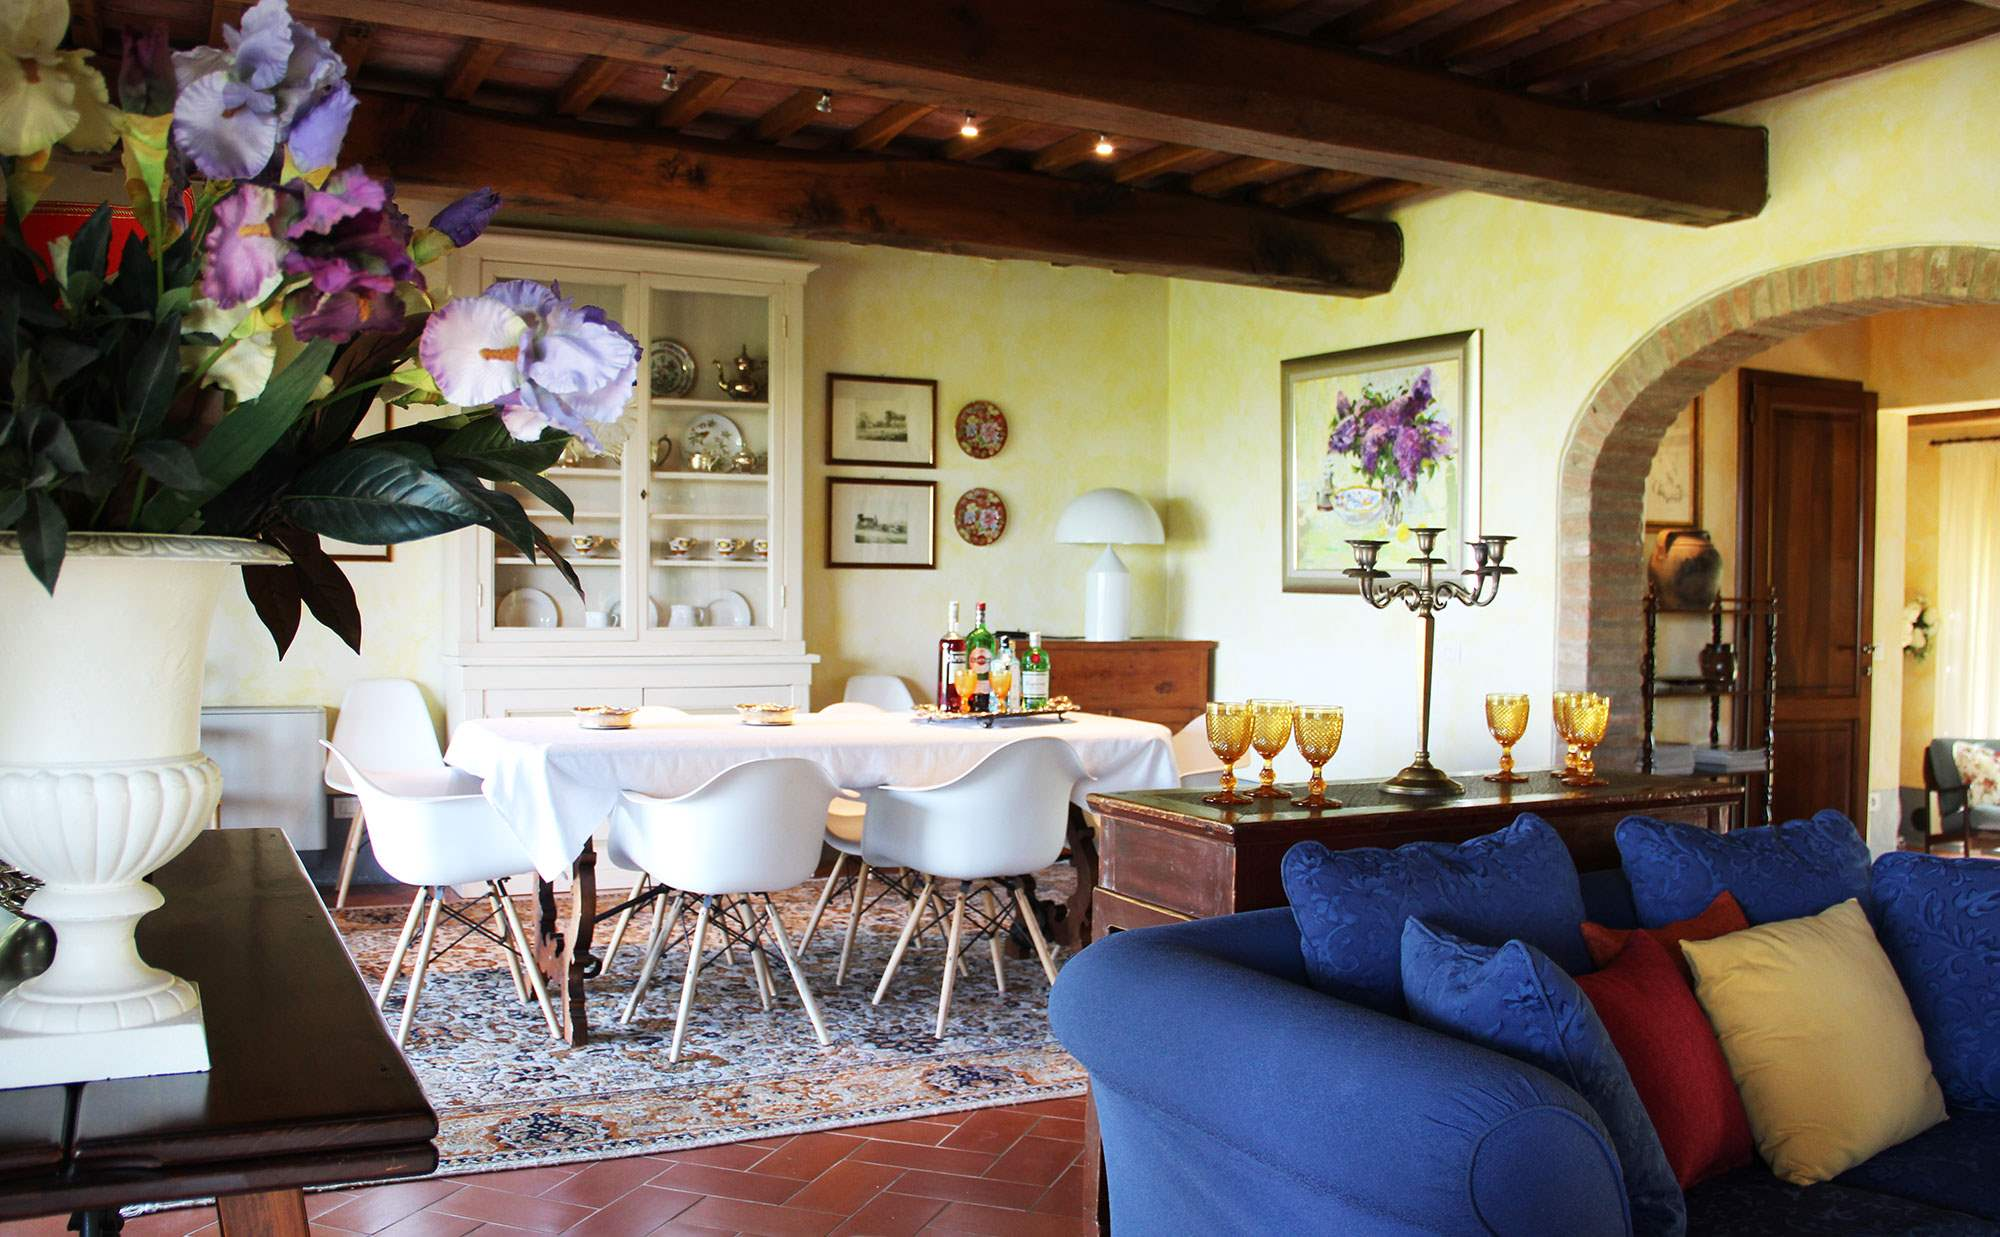 Villa Capanna, 3 bedroom villa in Chianti & Countryside, Tuscany Photo #5